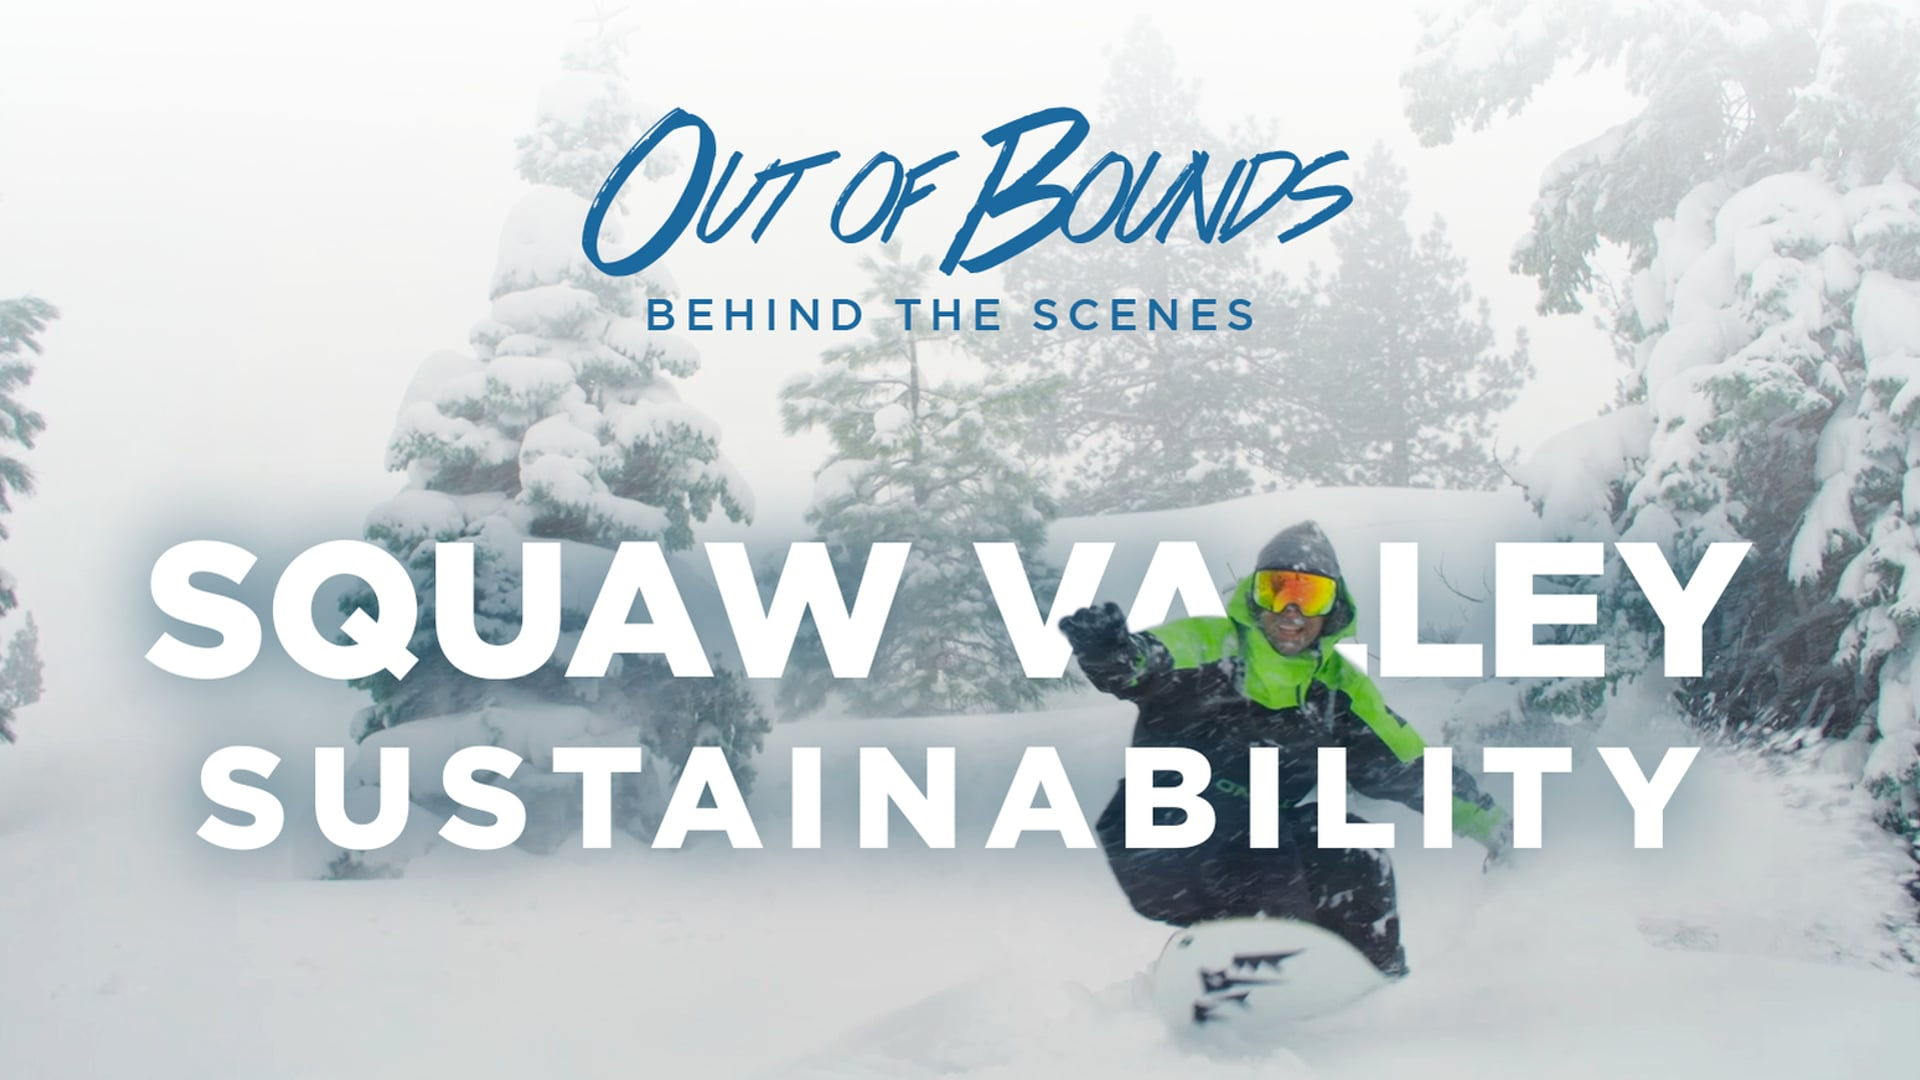 Out of Bounds - Behind the Scenes 7 - Squaw Sustainability